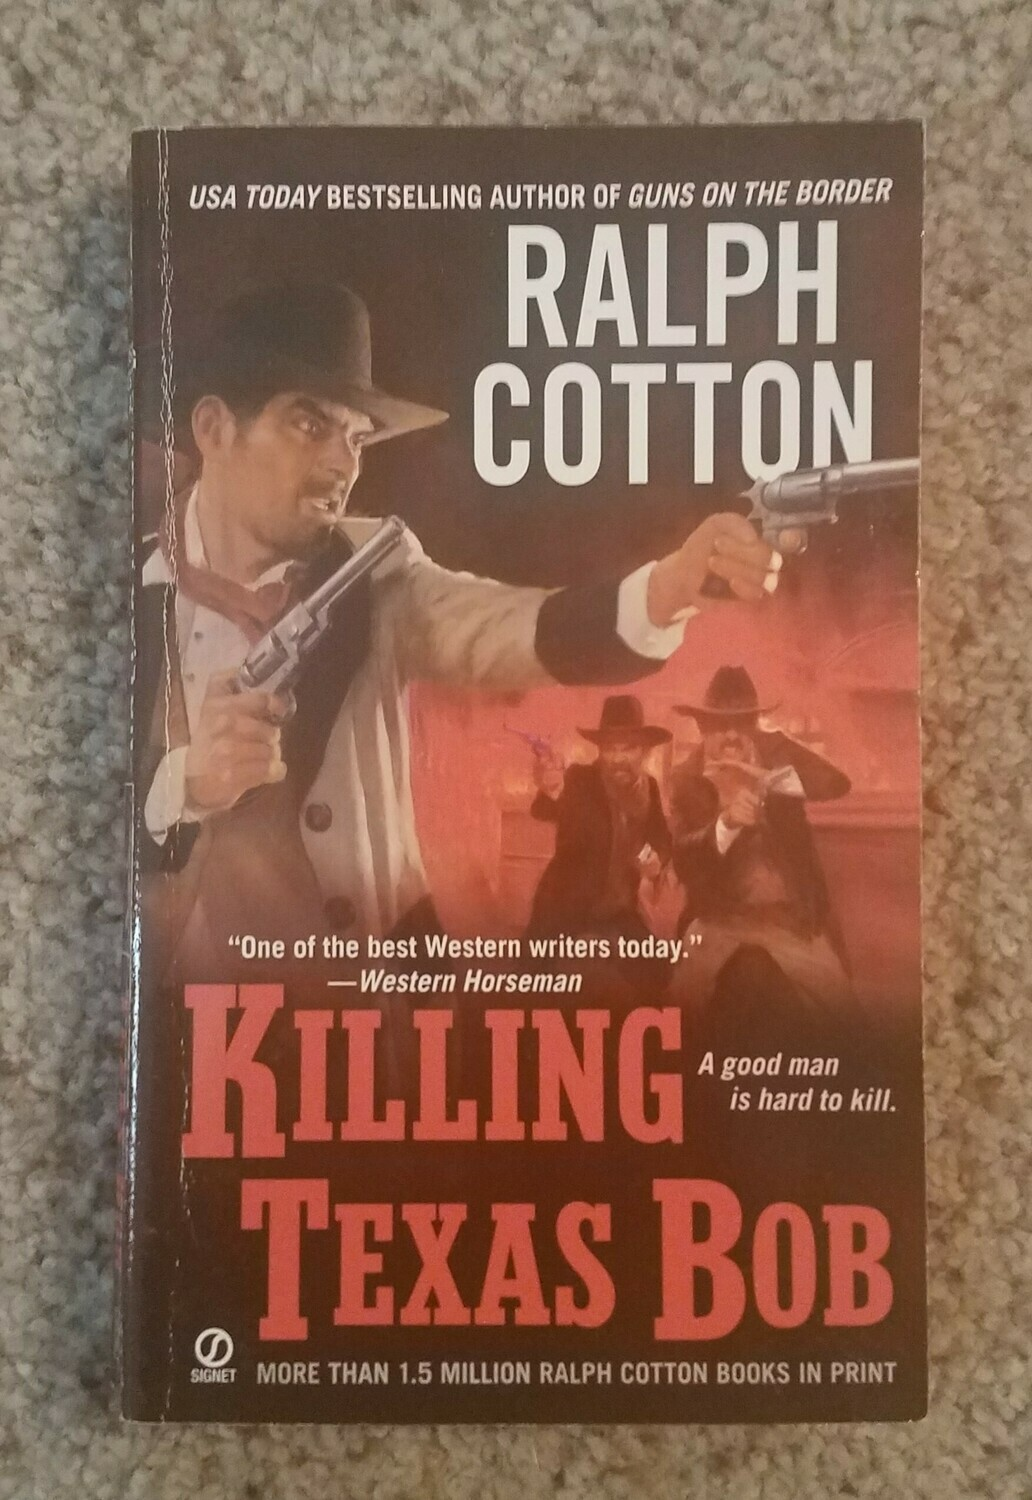 Killing Texas Bob by Ralph Cotton